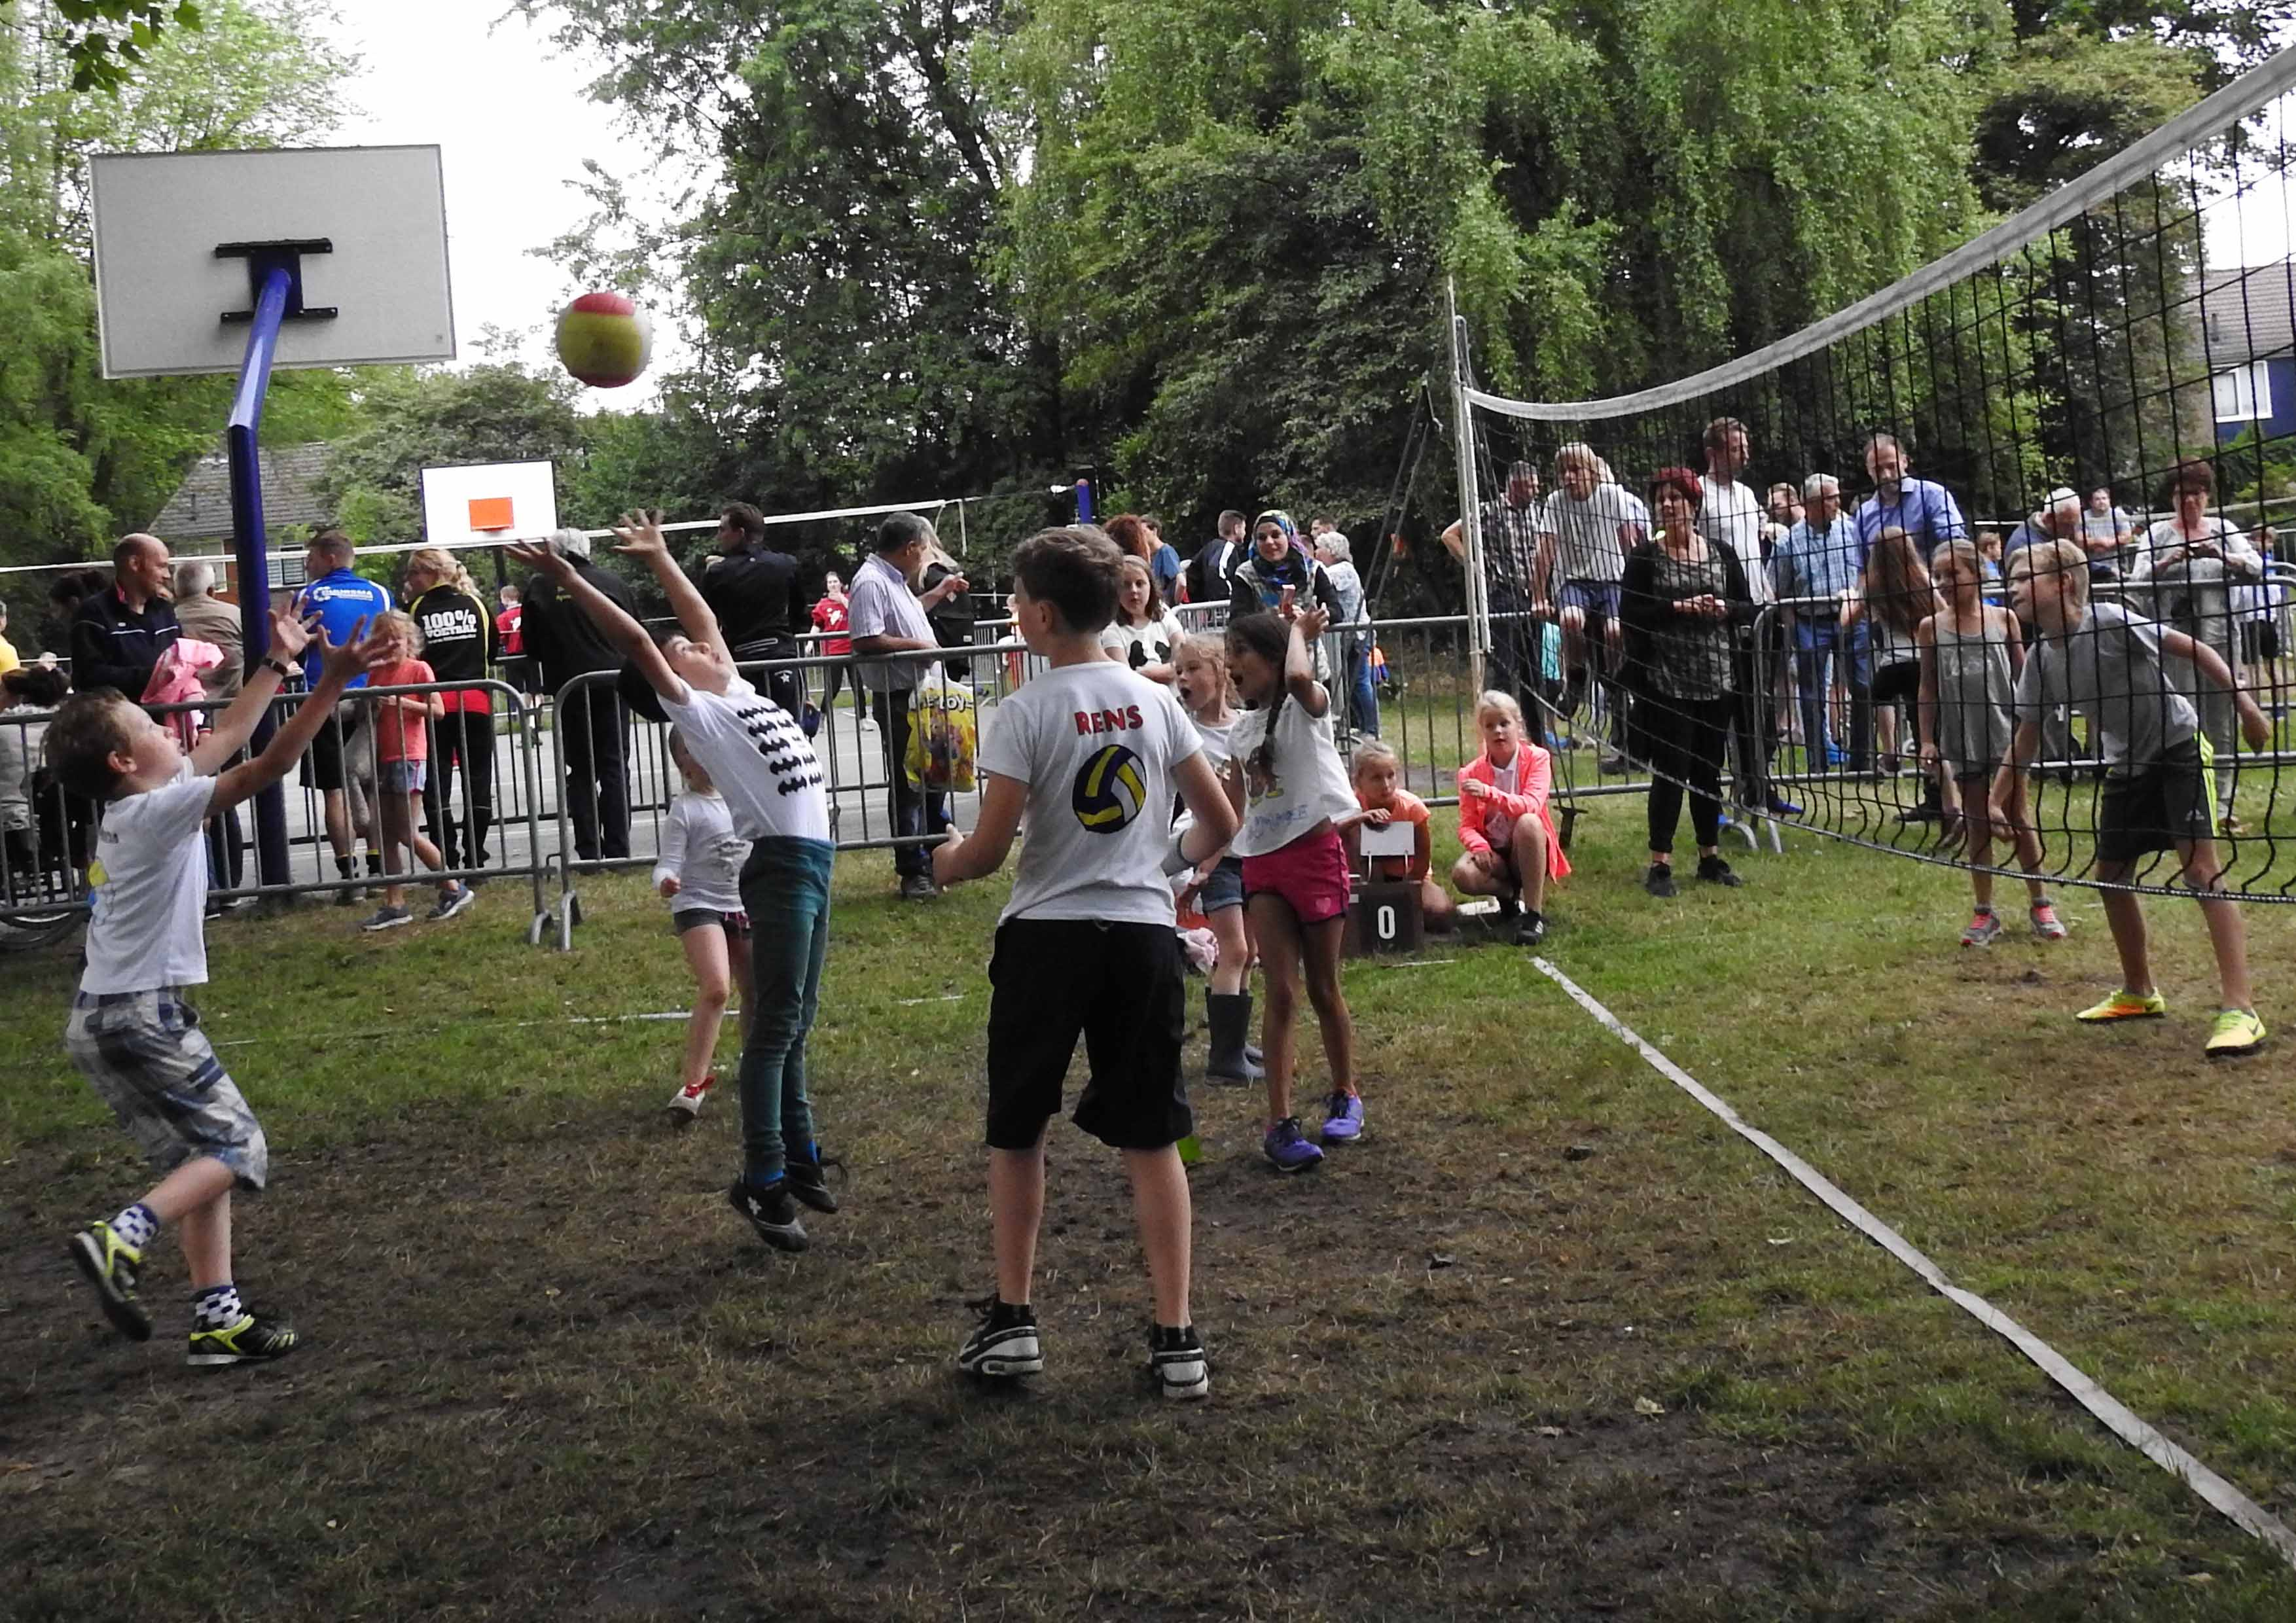 2017-06-29_BB_Straatvolleybal (19)